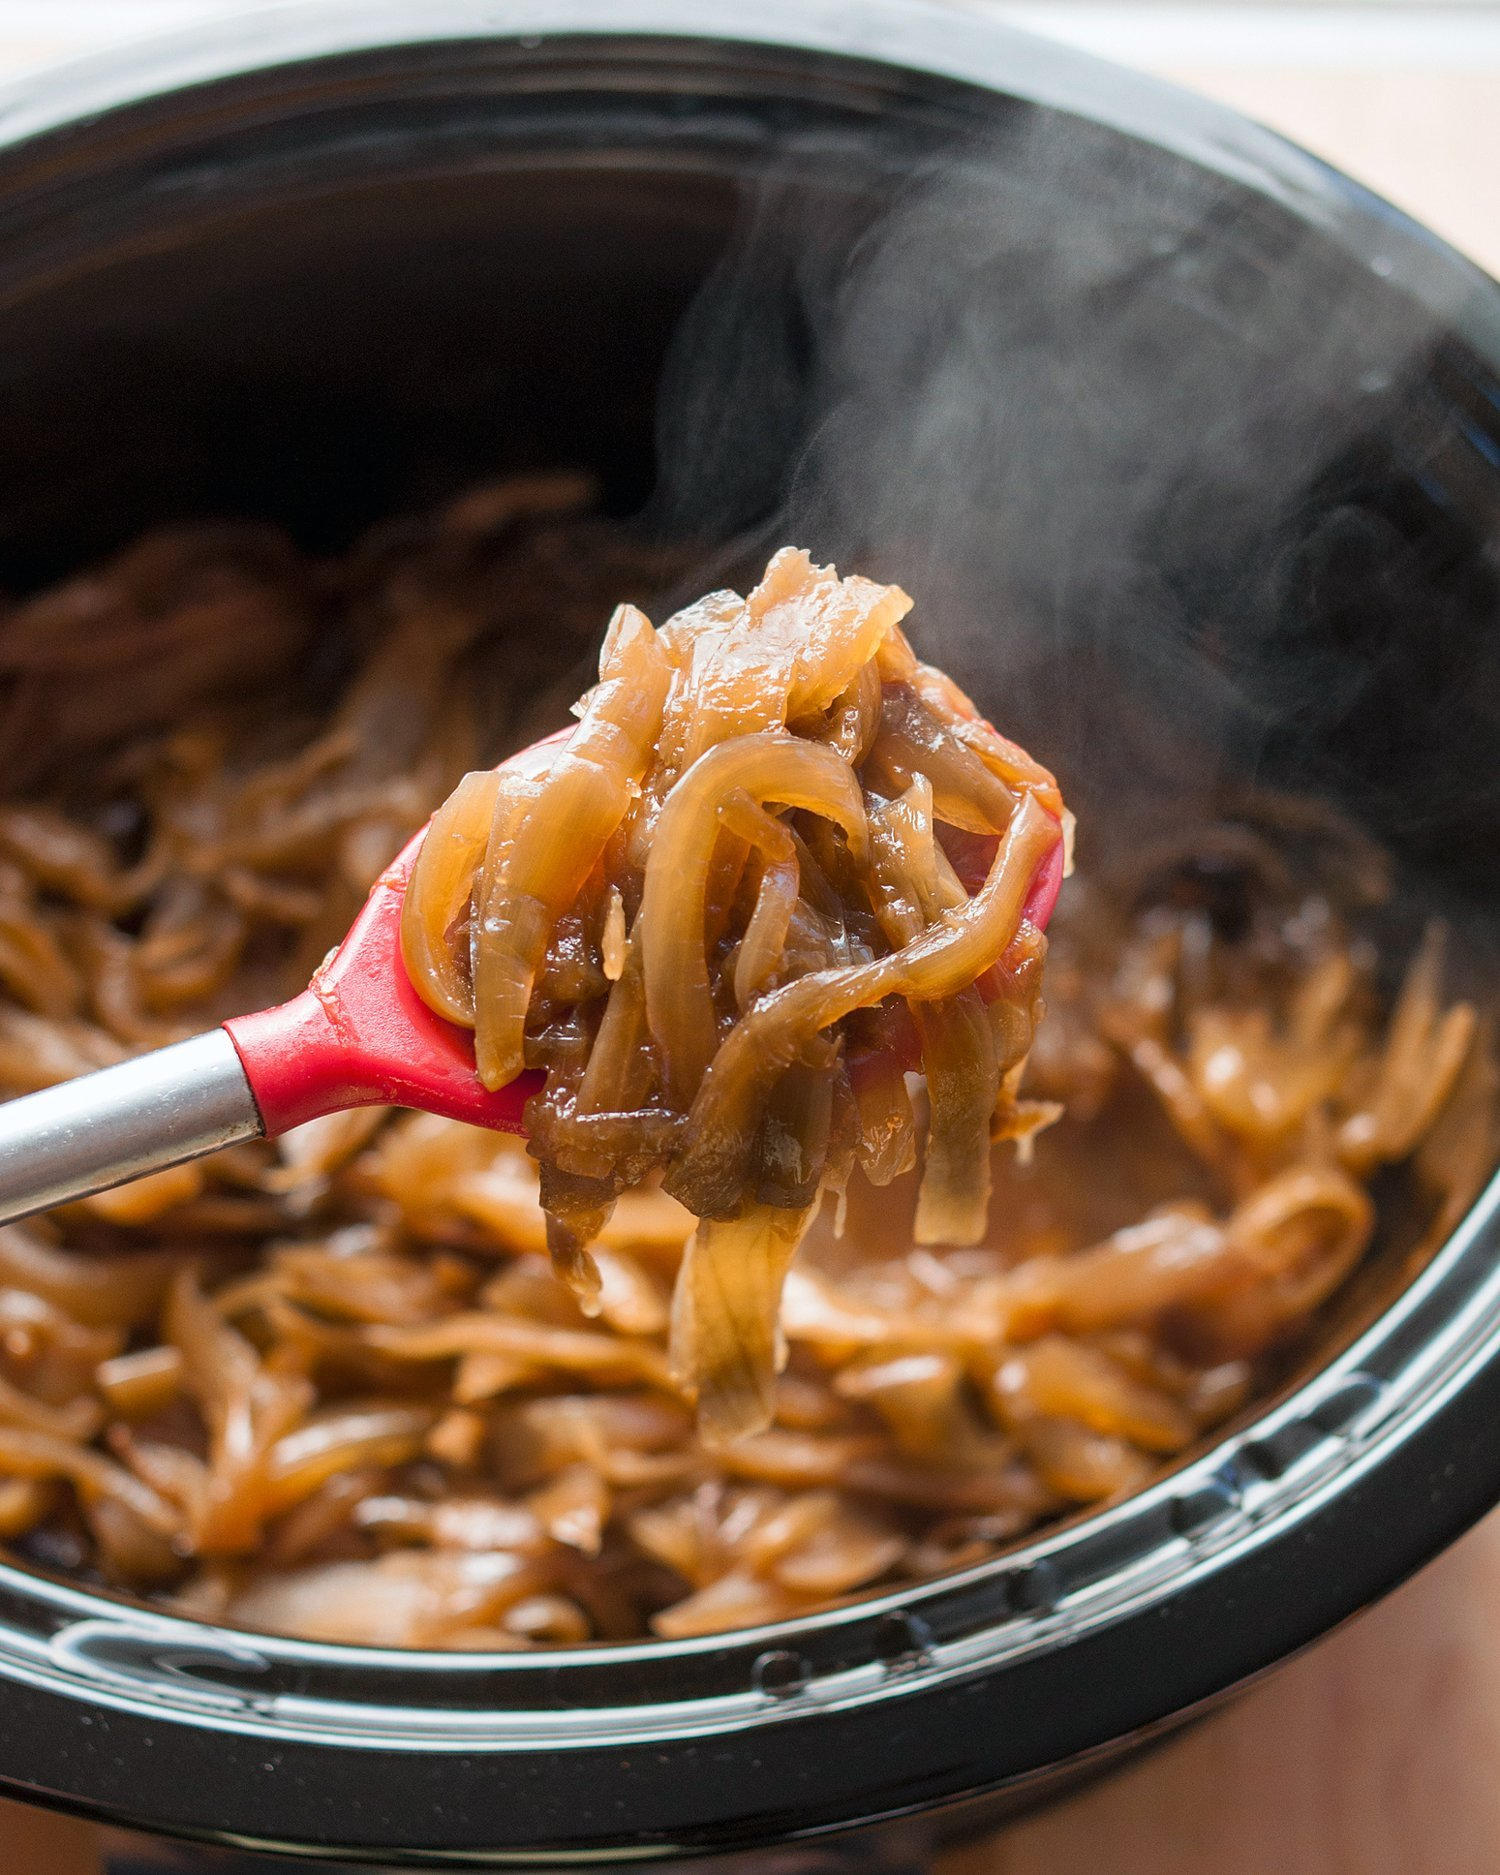 Recipes Course How To Caramelize Onions in the Slow Cooker